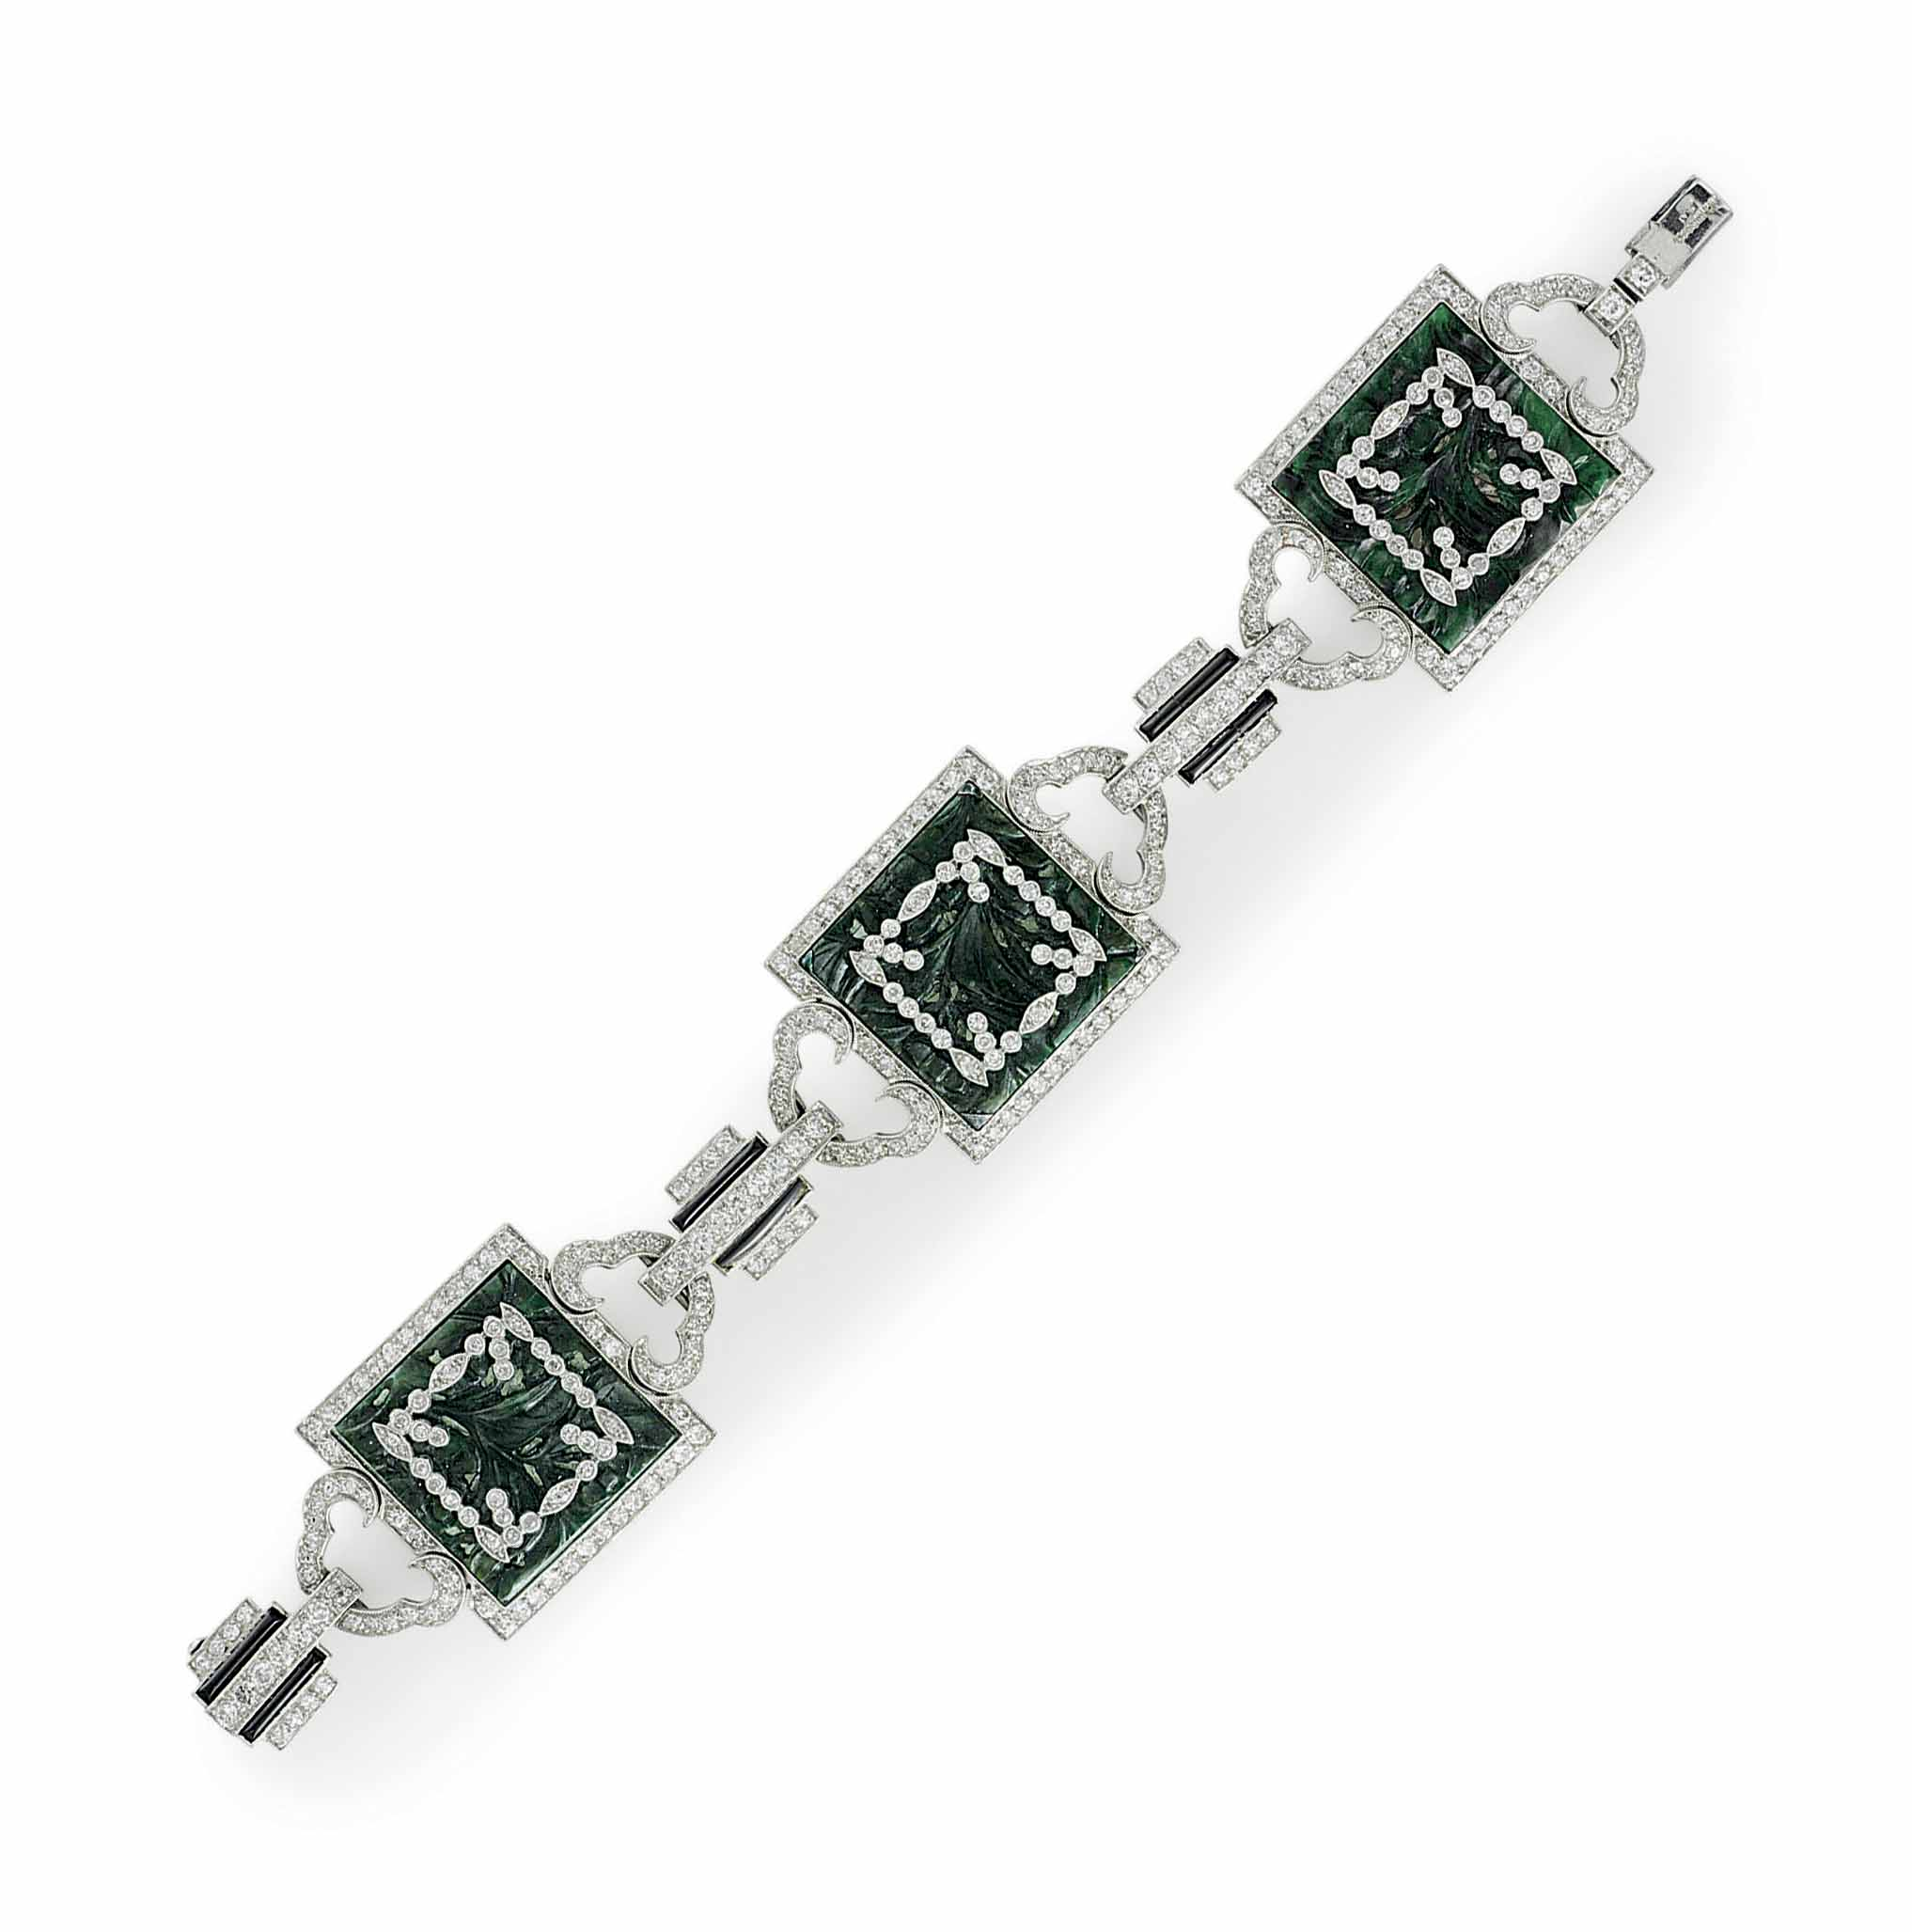 AN ART DECO DIAMOND, JADE AND ONYX BRACELET, BY MARCUS & CO.